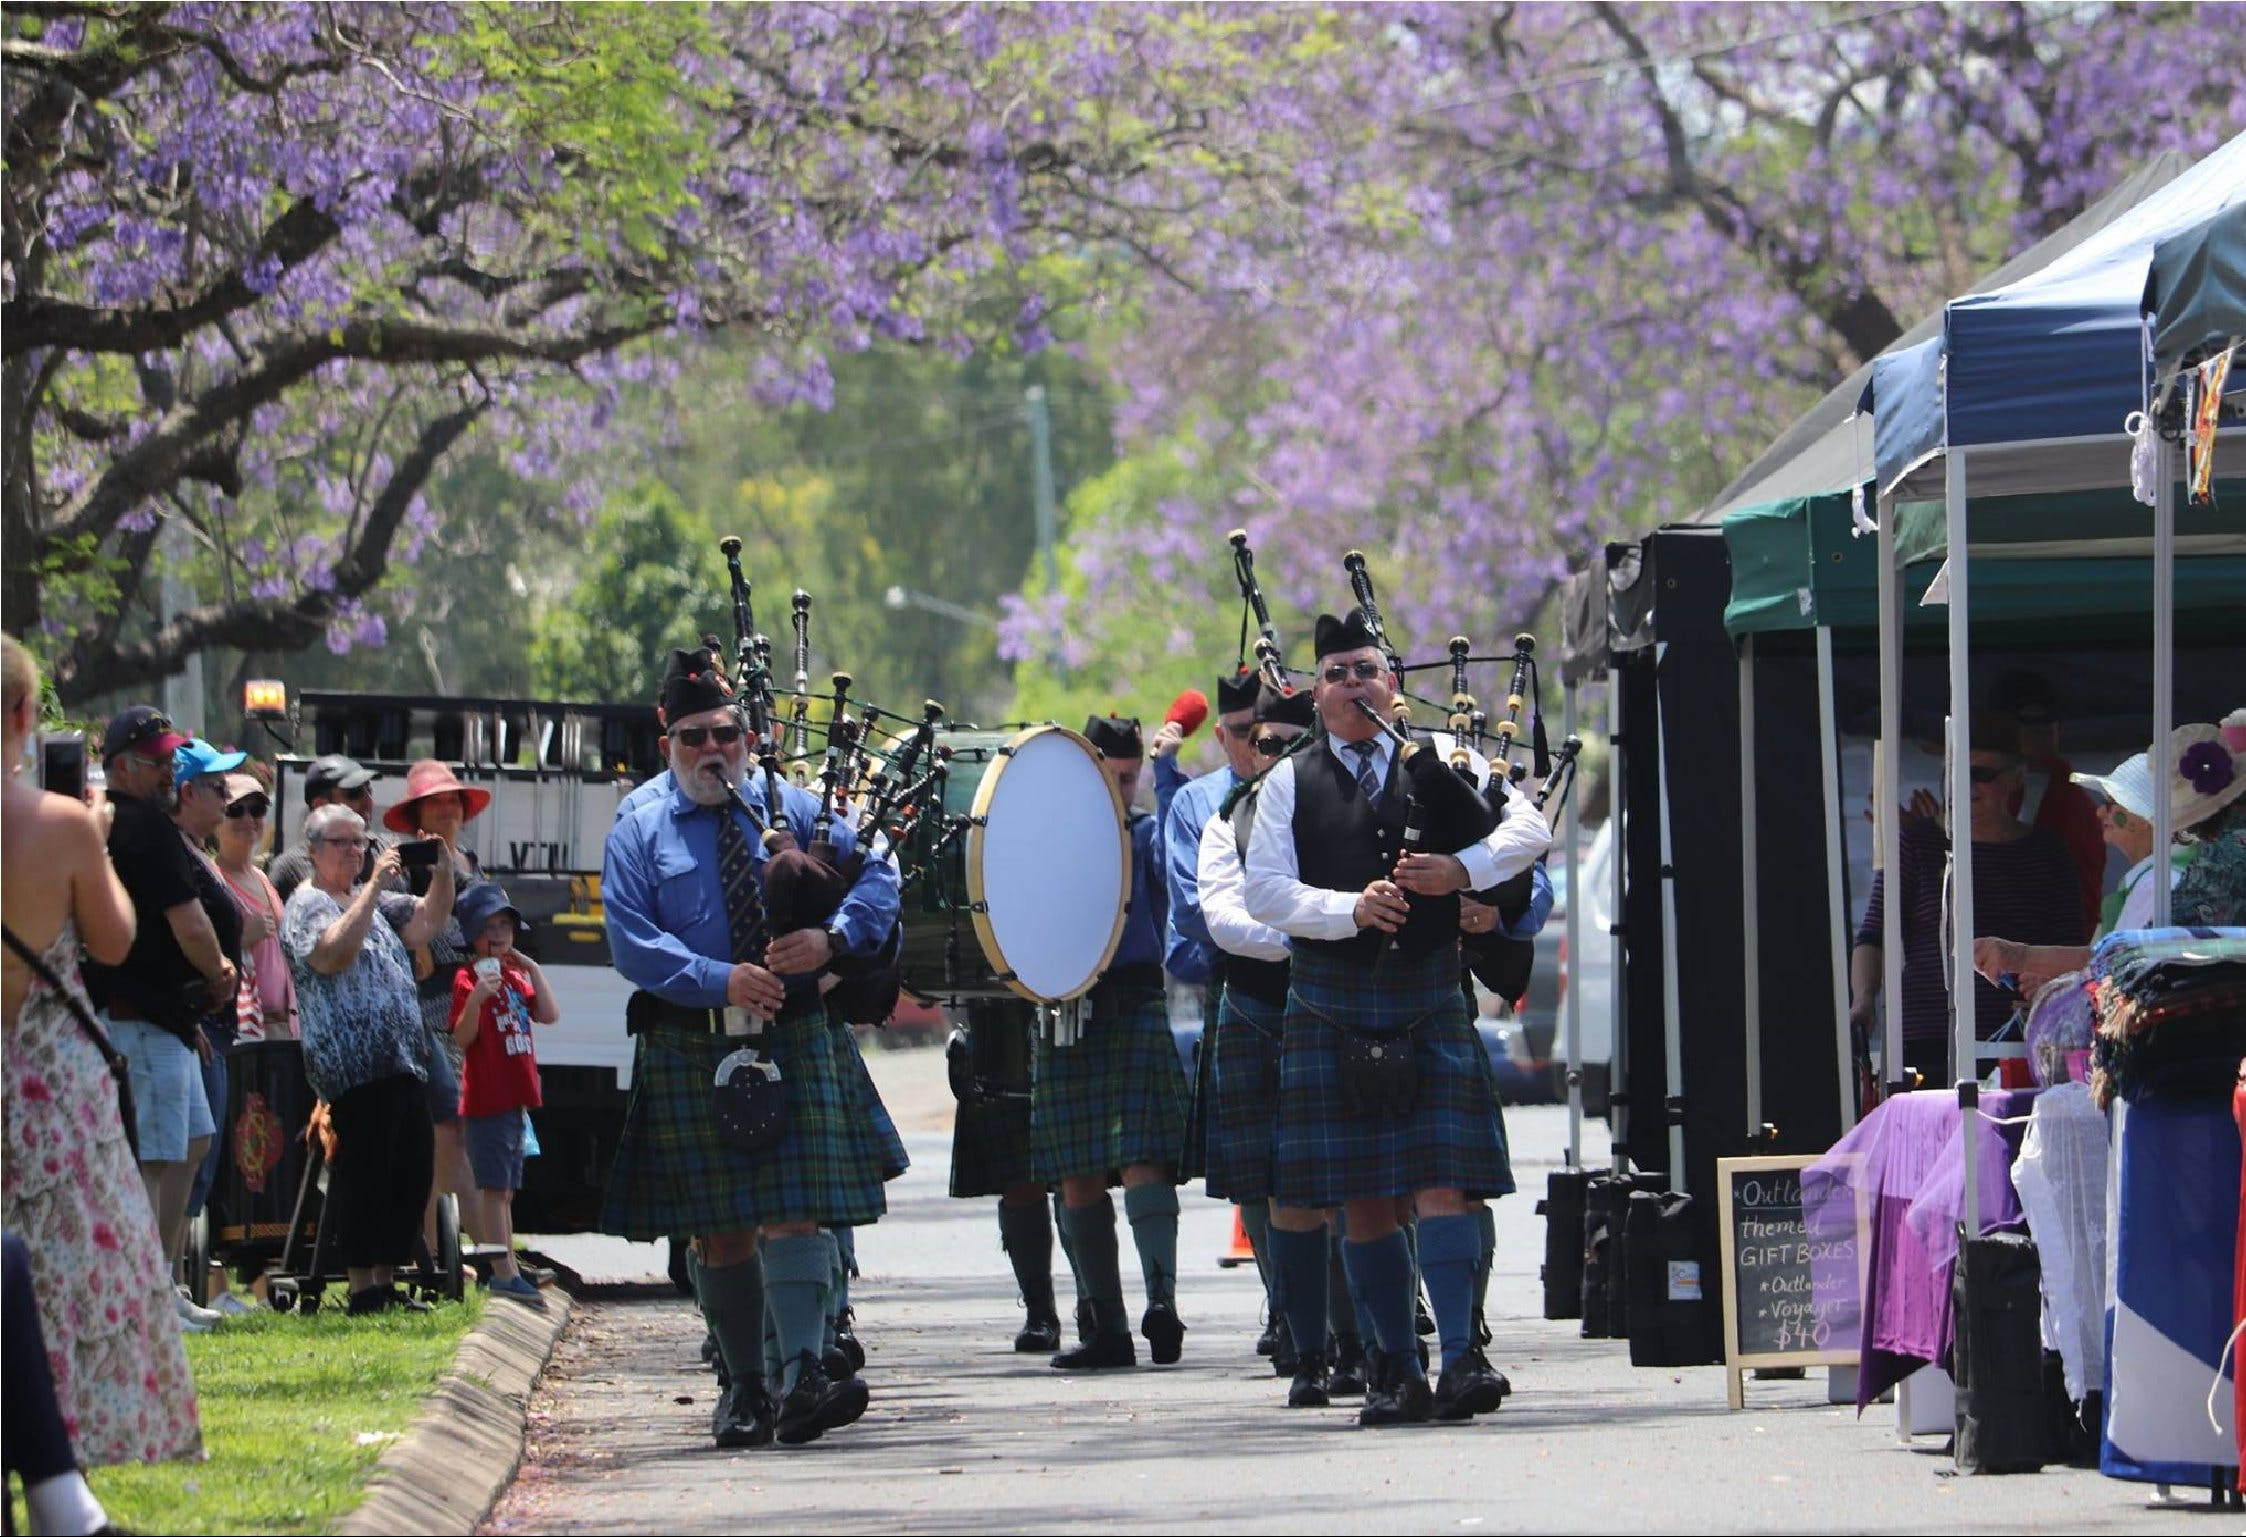 Celtic Festival of Queensland - Kempsey Accommodation